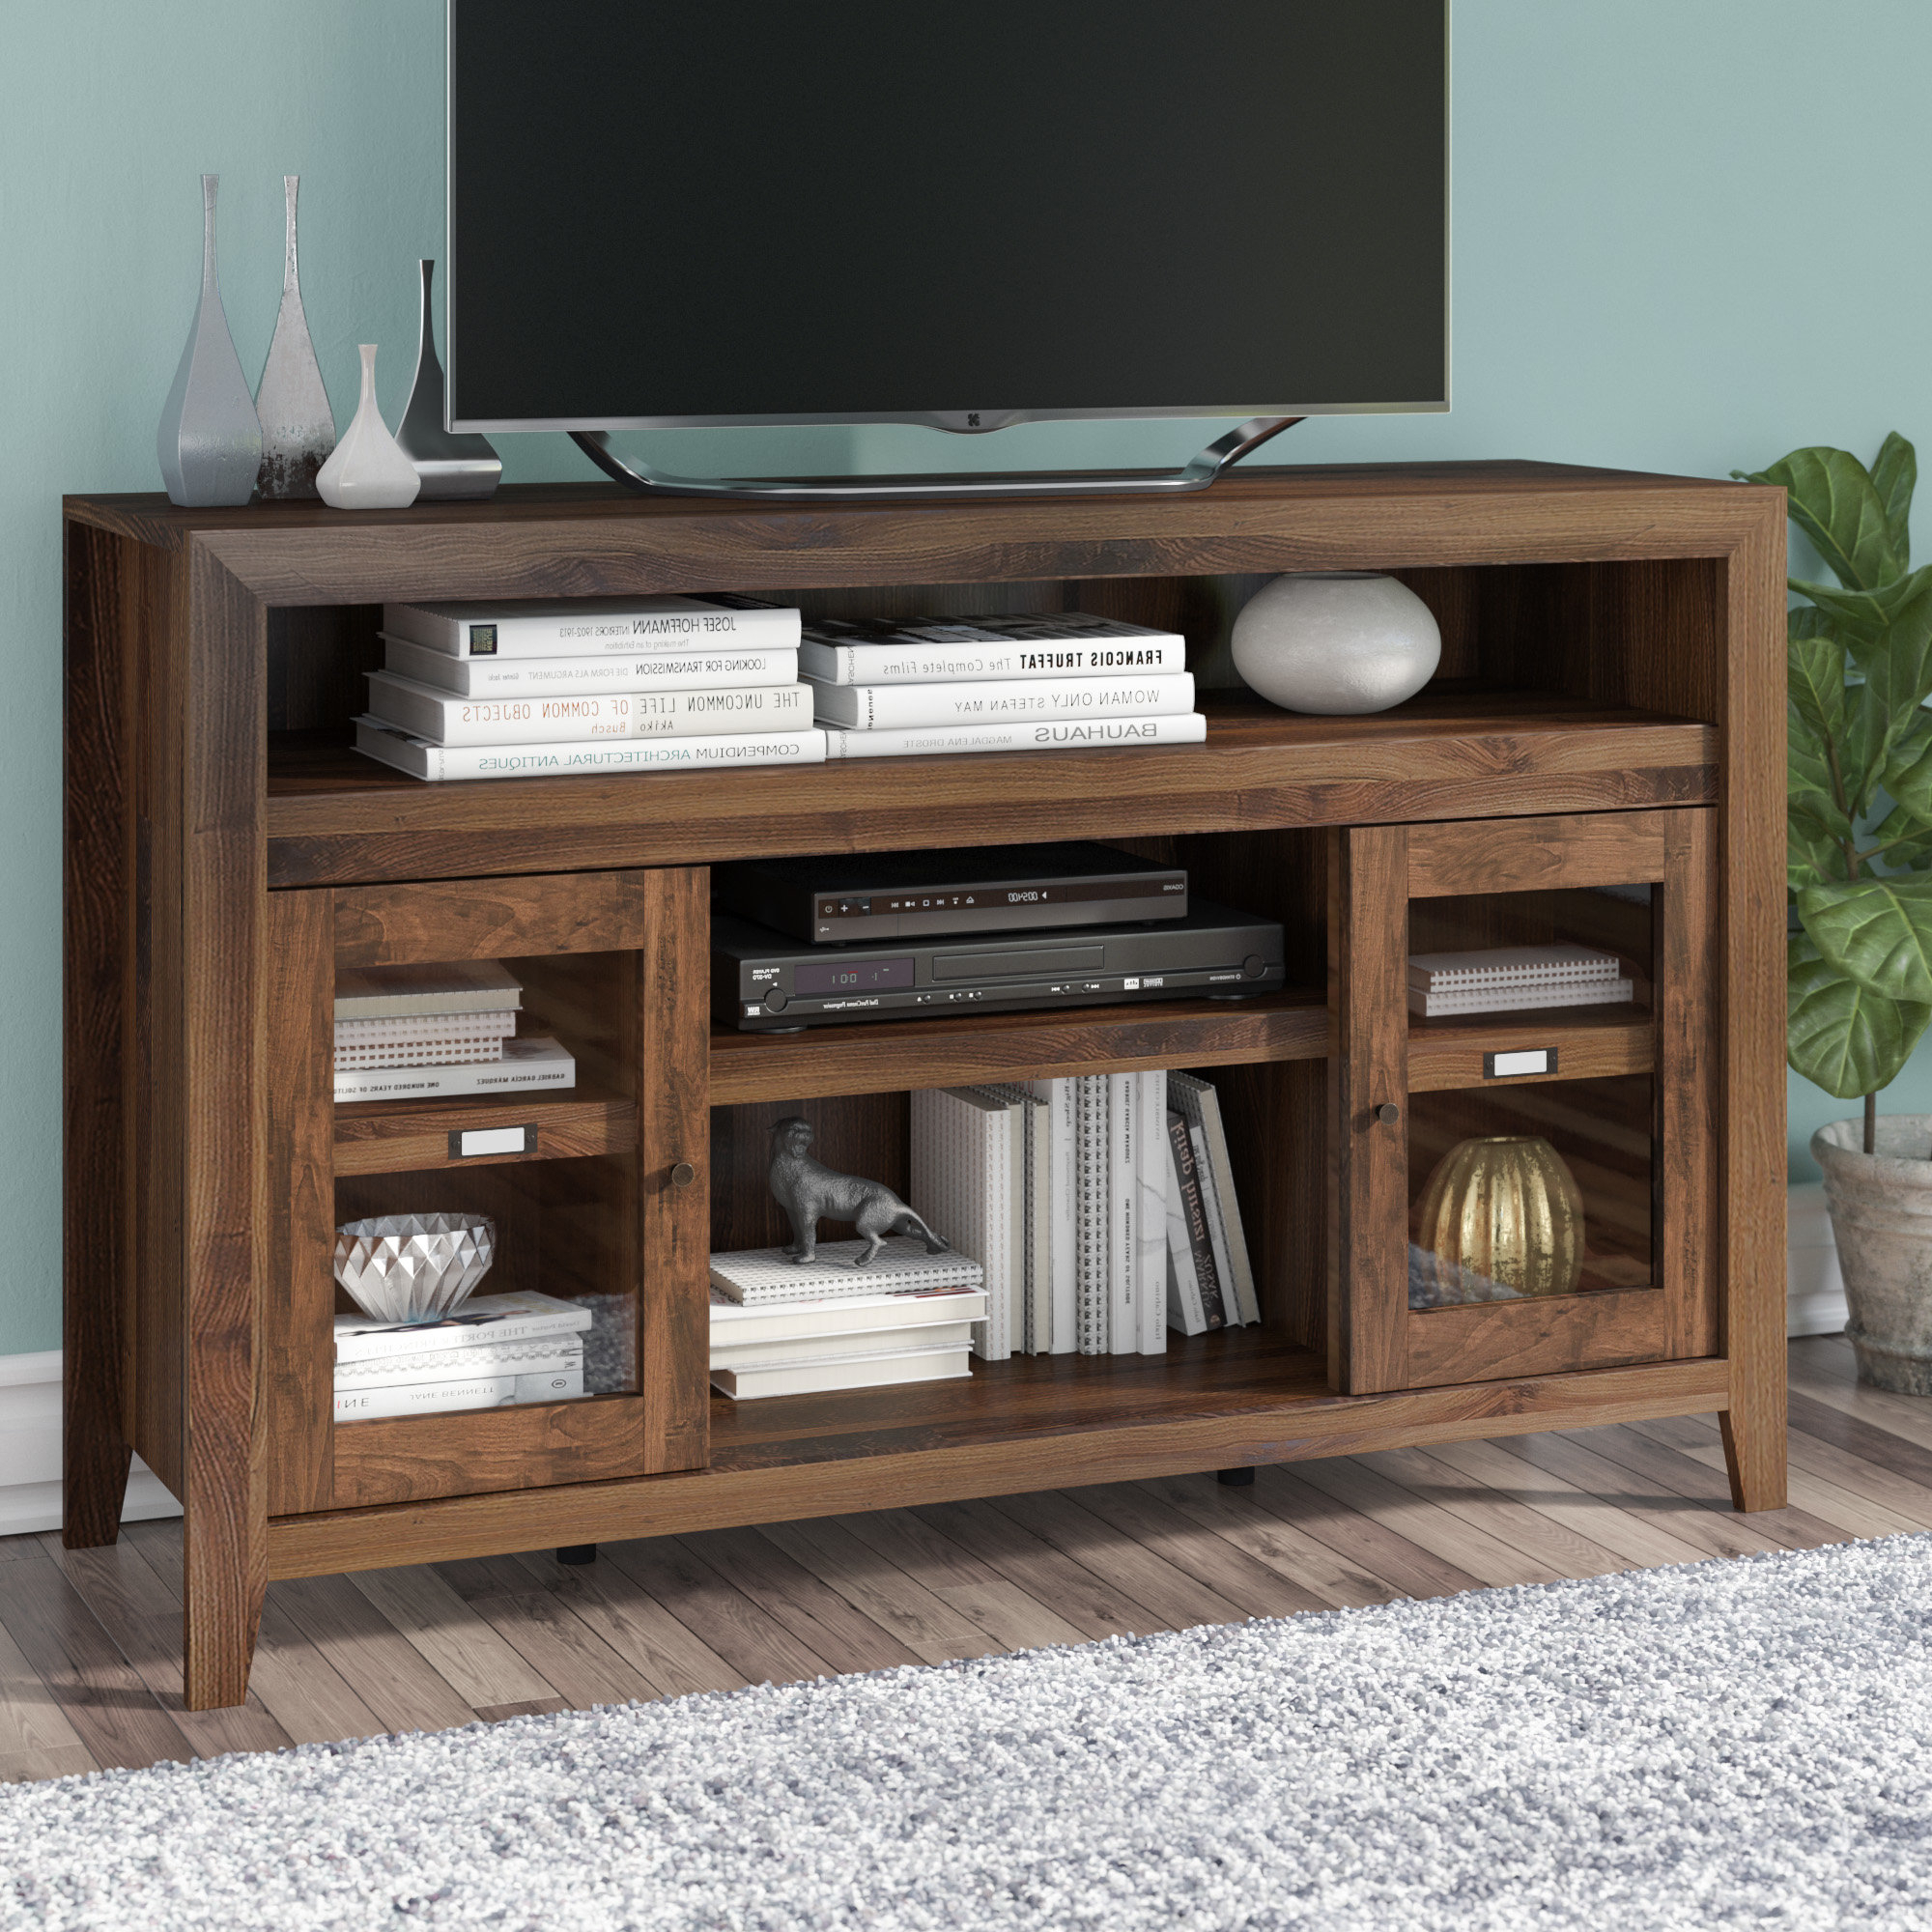 Tall Tv Stands You'll Love | Wayfair For Canyon 54 Inch Tv Stands (View 13 of 20)